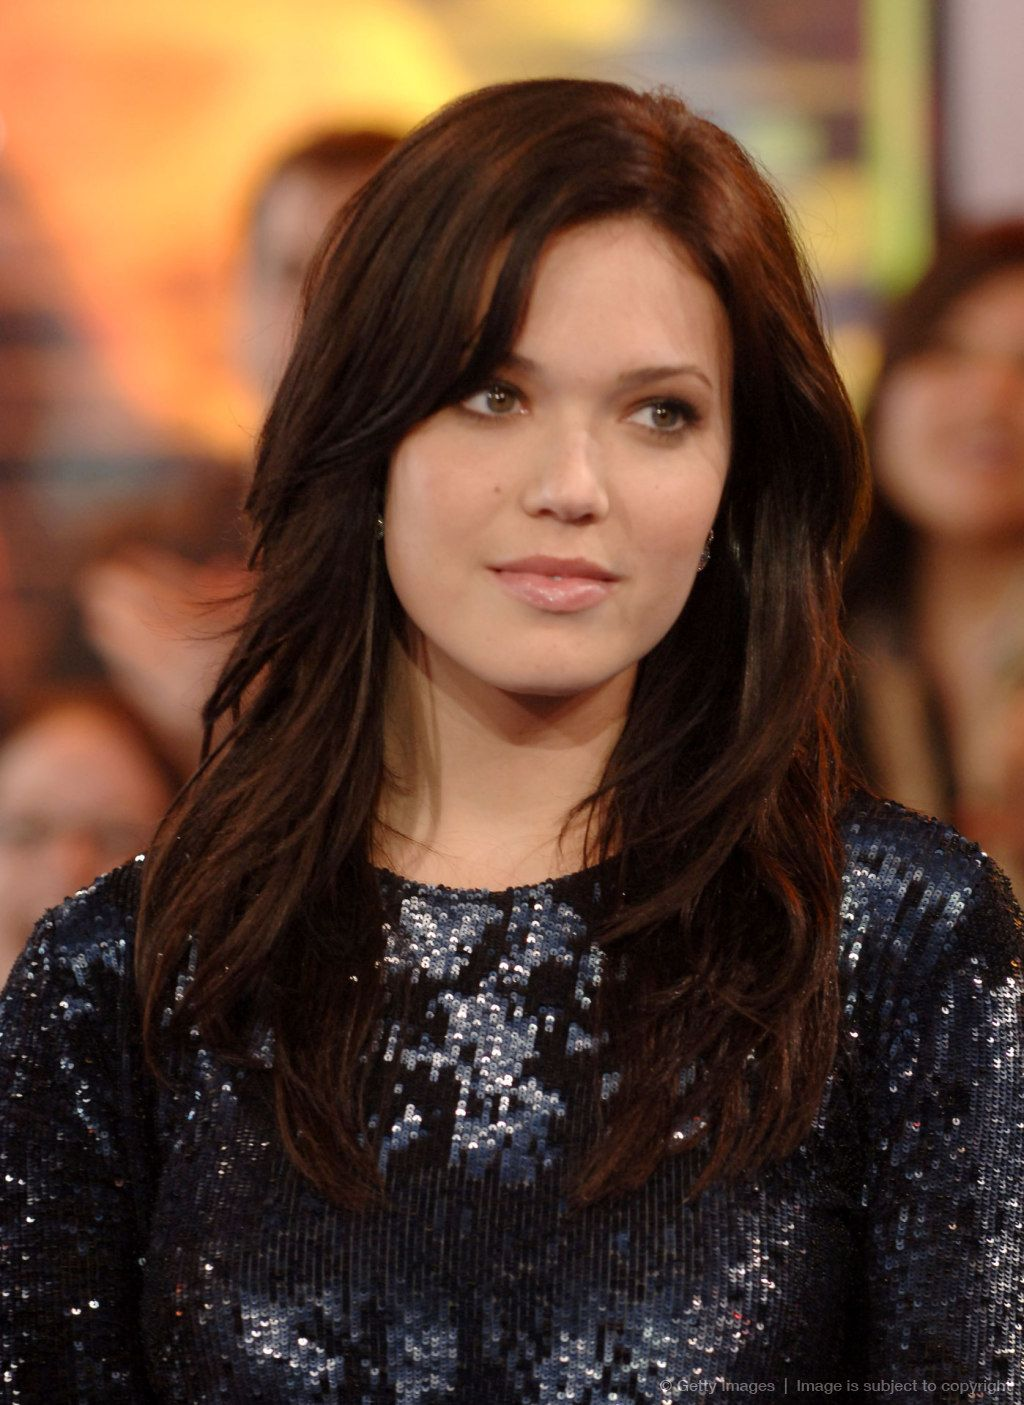 Mandy moore love the hair fashion beauty pinterest hair mandy moore love the hair baditri Image collections